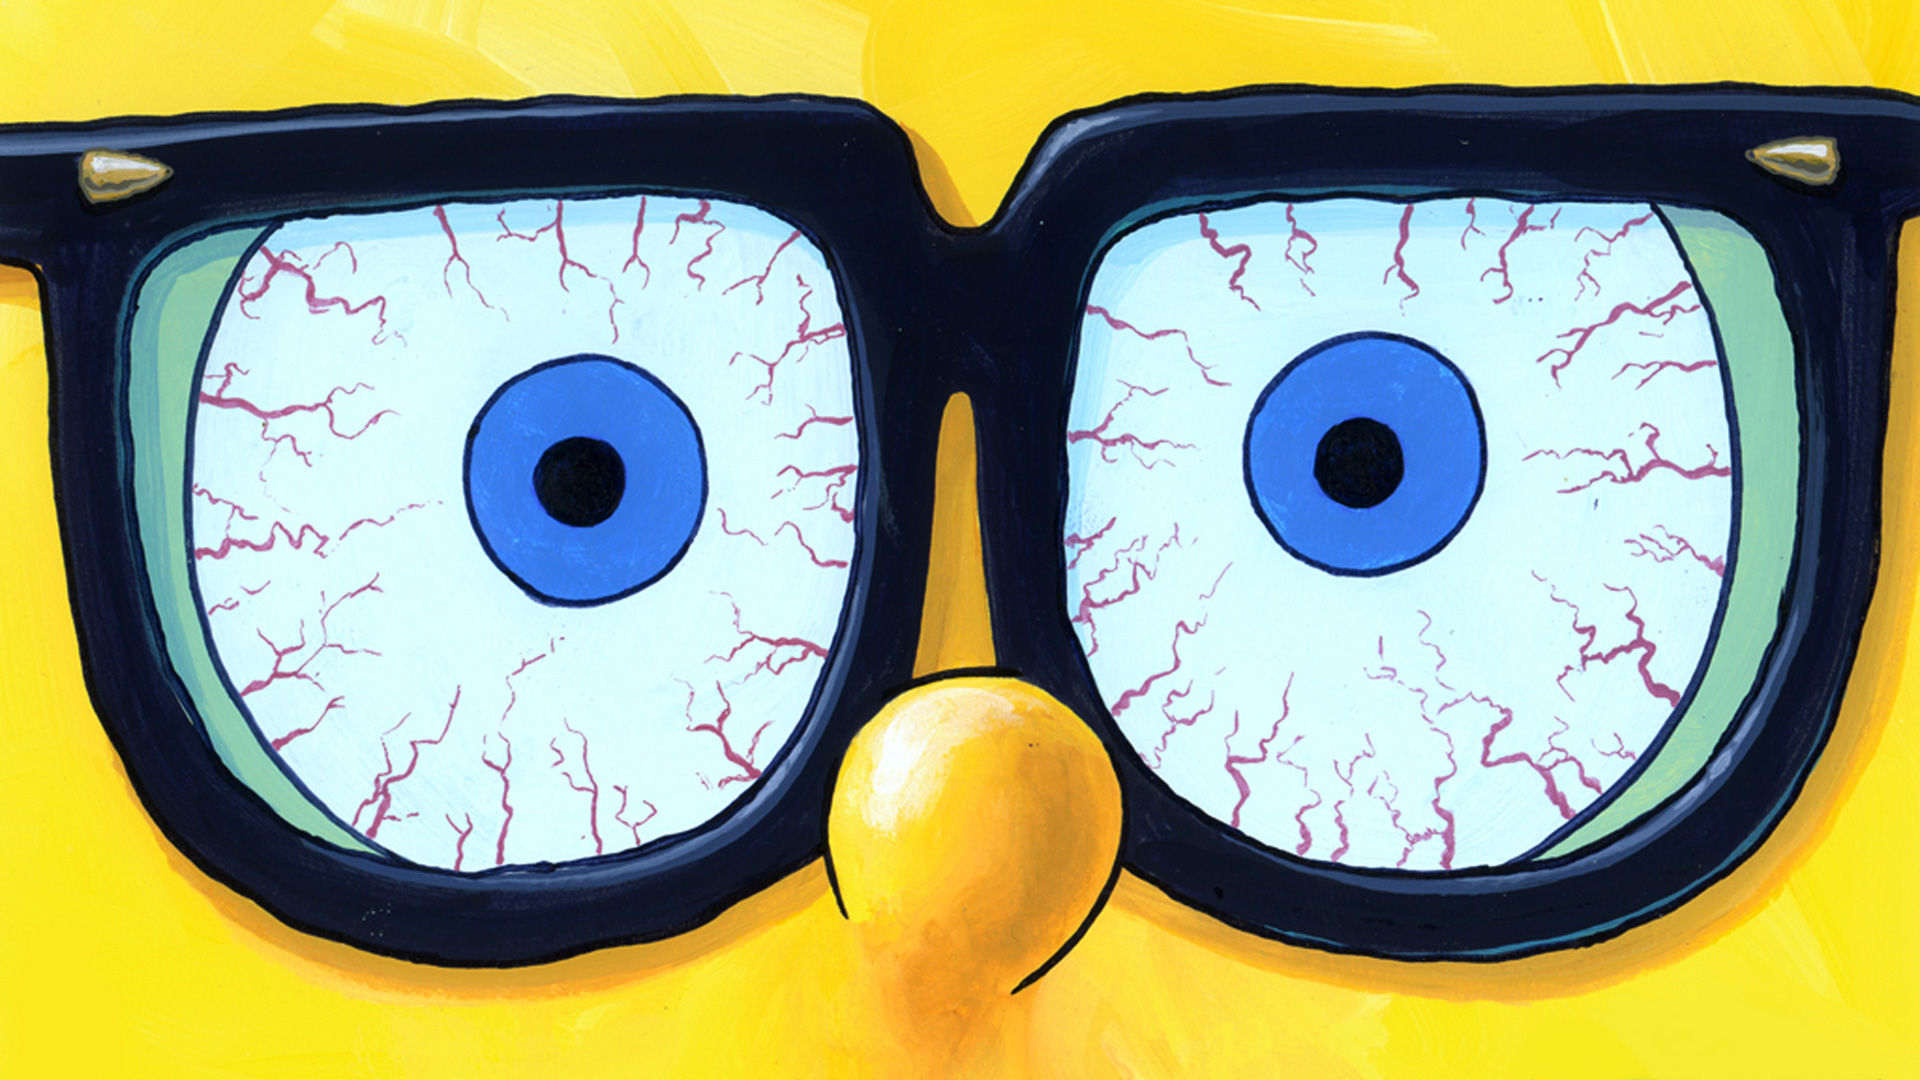 Bob Esponja Wallpaper Anti-aggro Priest